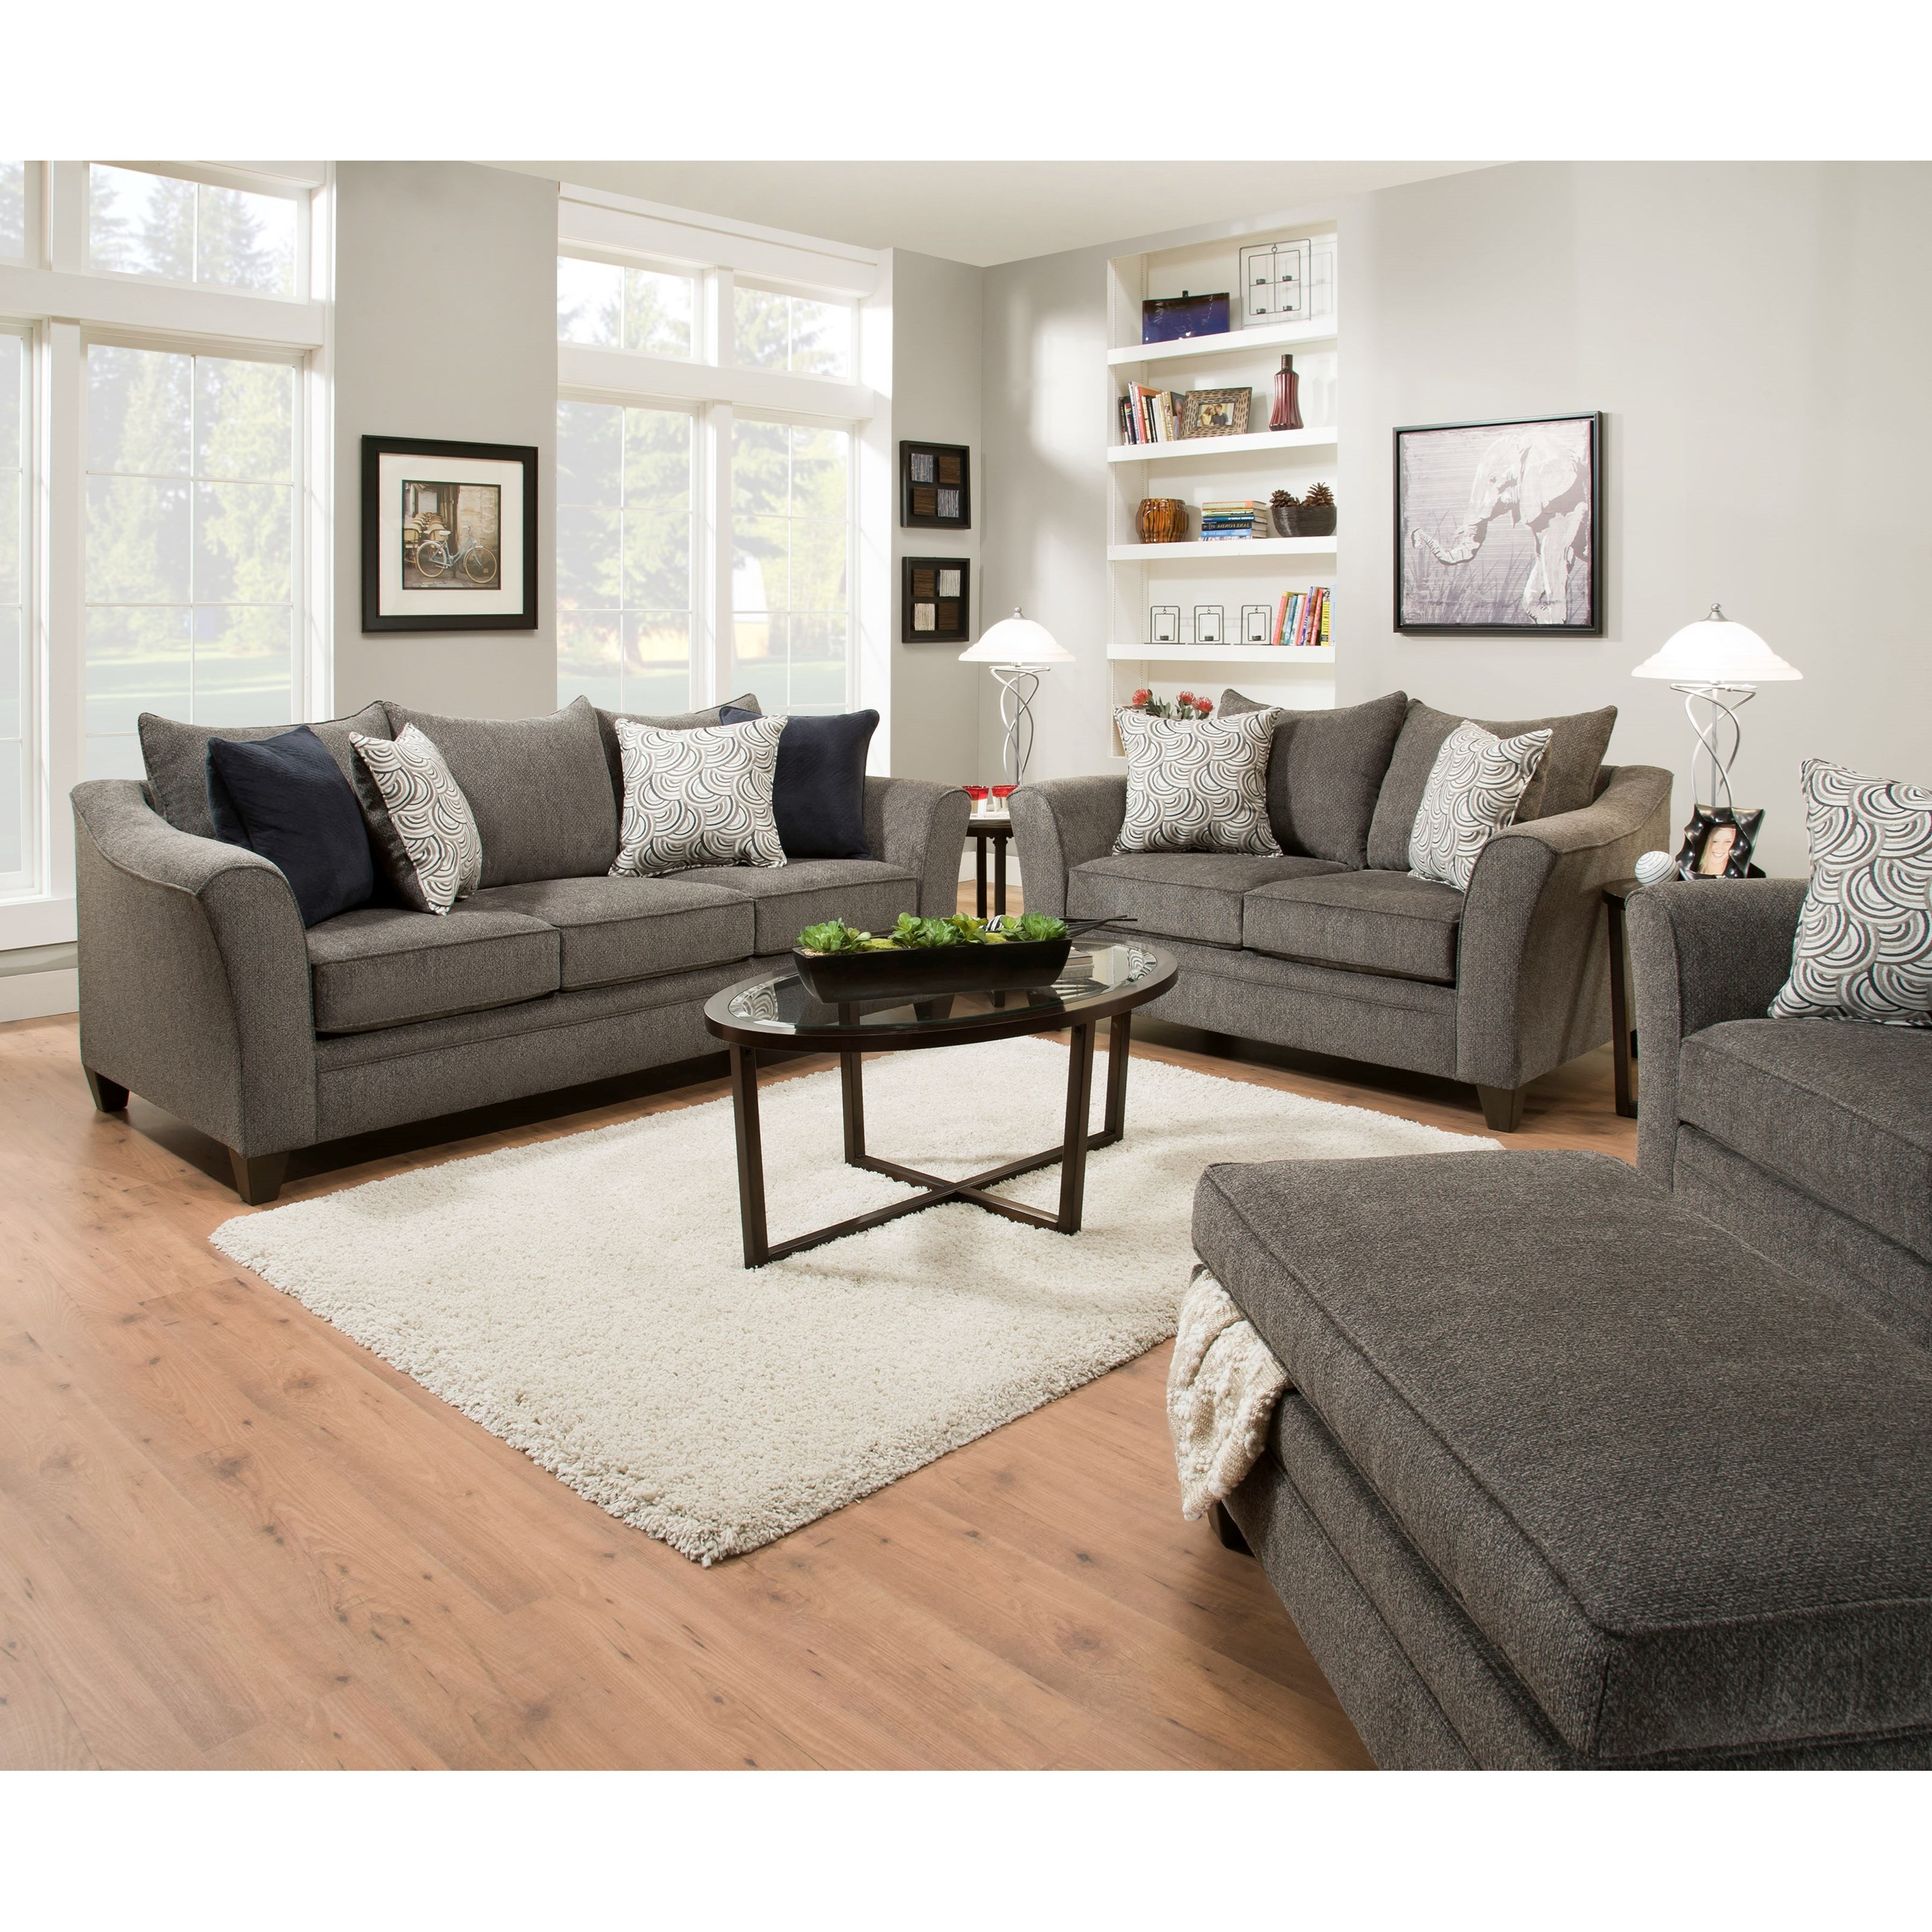 Simmons Upholstery 6485 Living Room Group - Item Number: 6485LivingRoomGroup-Pewter